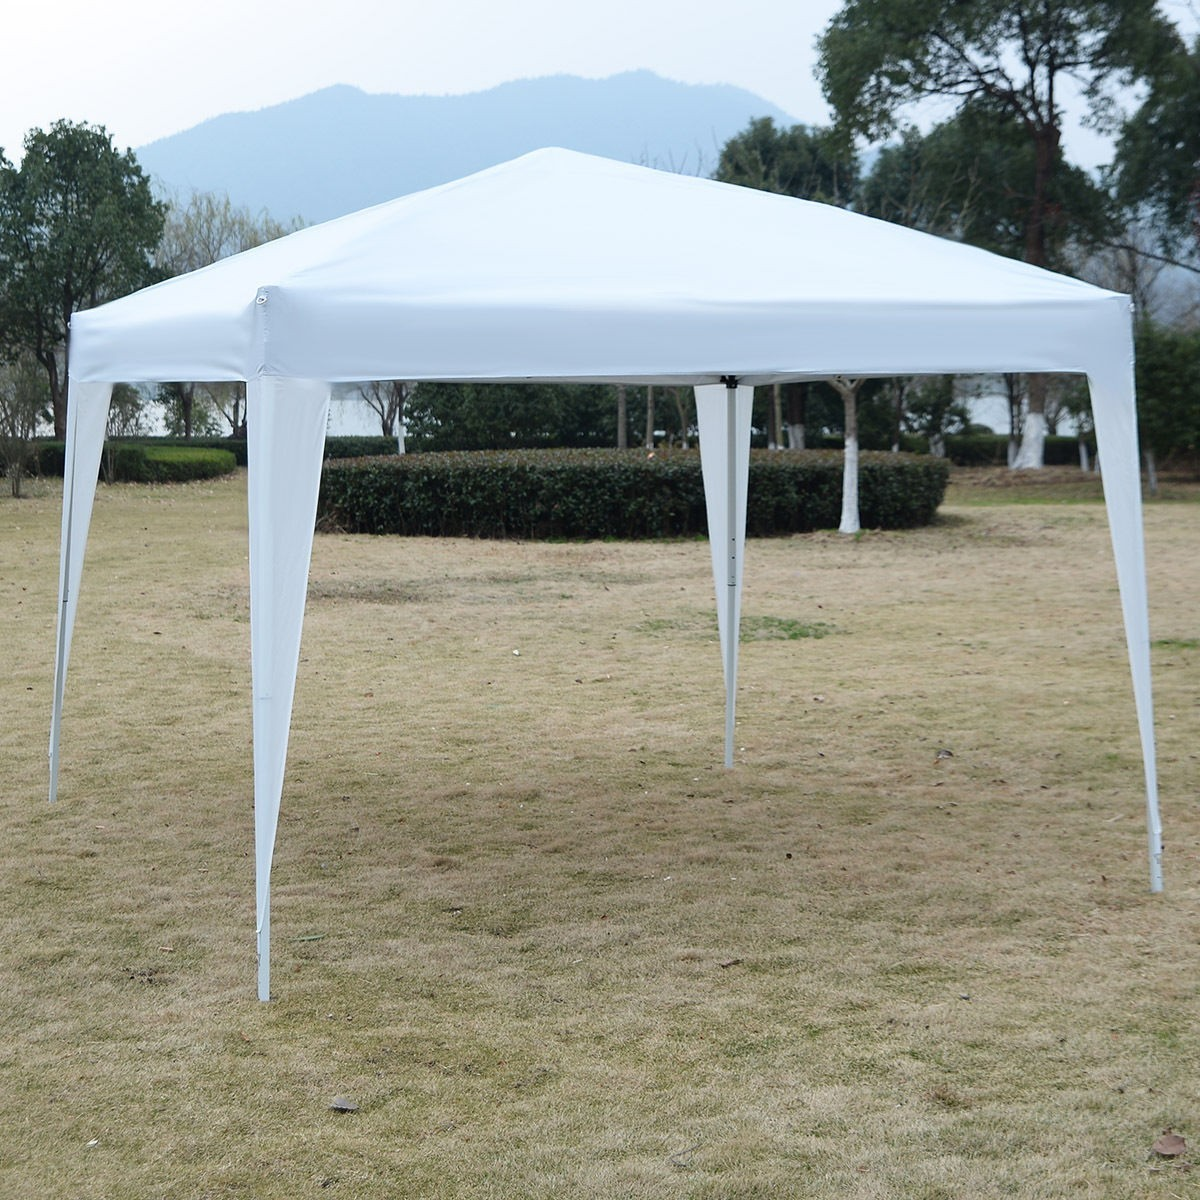 GOPLUS 10X10 EZ POP UP Canopy Tent Gazebo Wedding Party Shelter Carry Bag White by Apontus